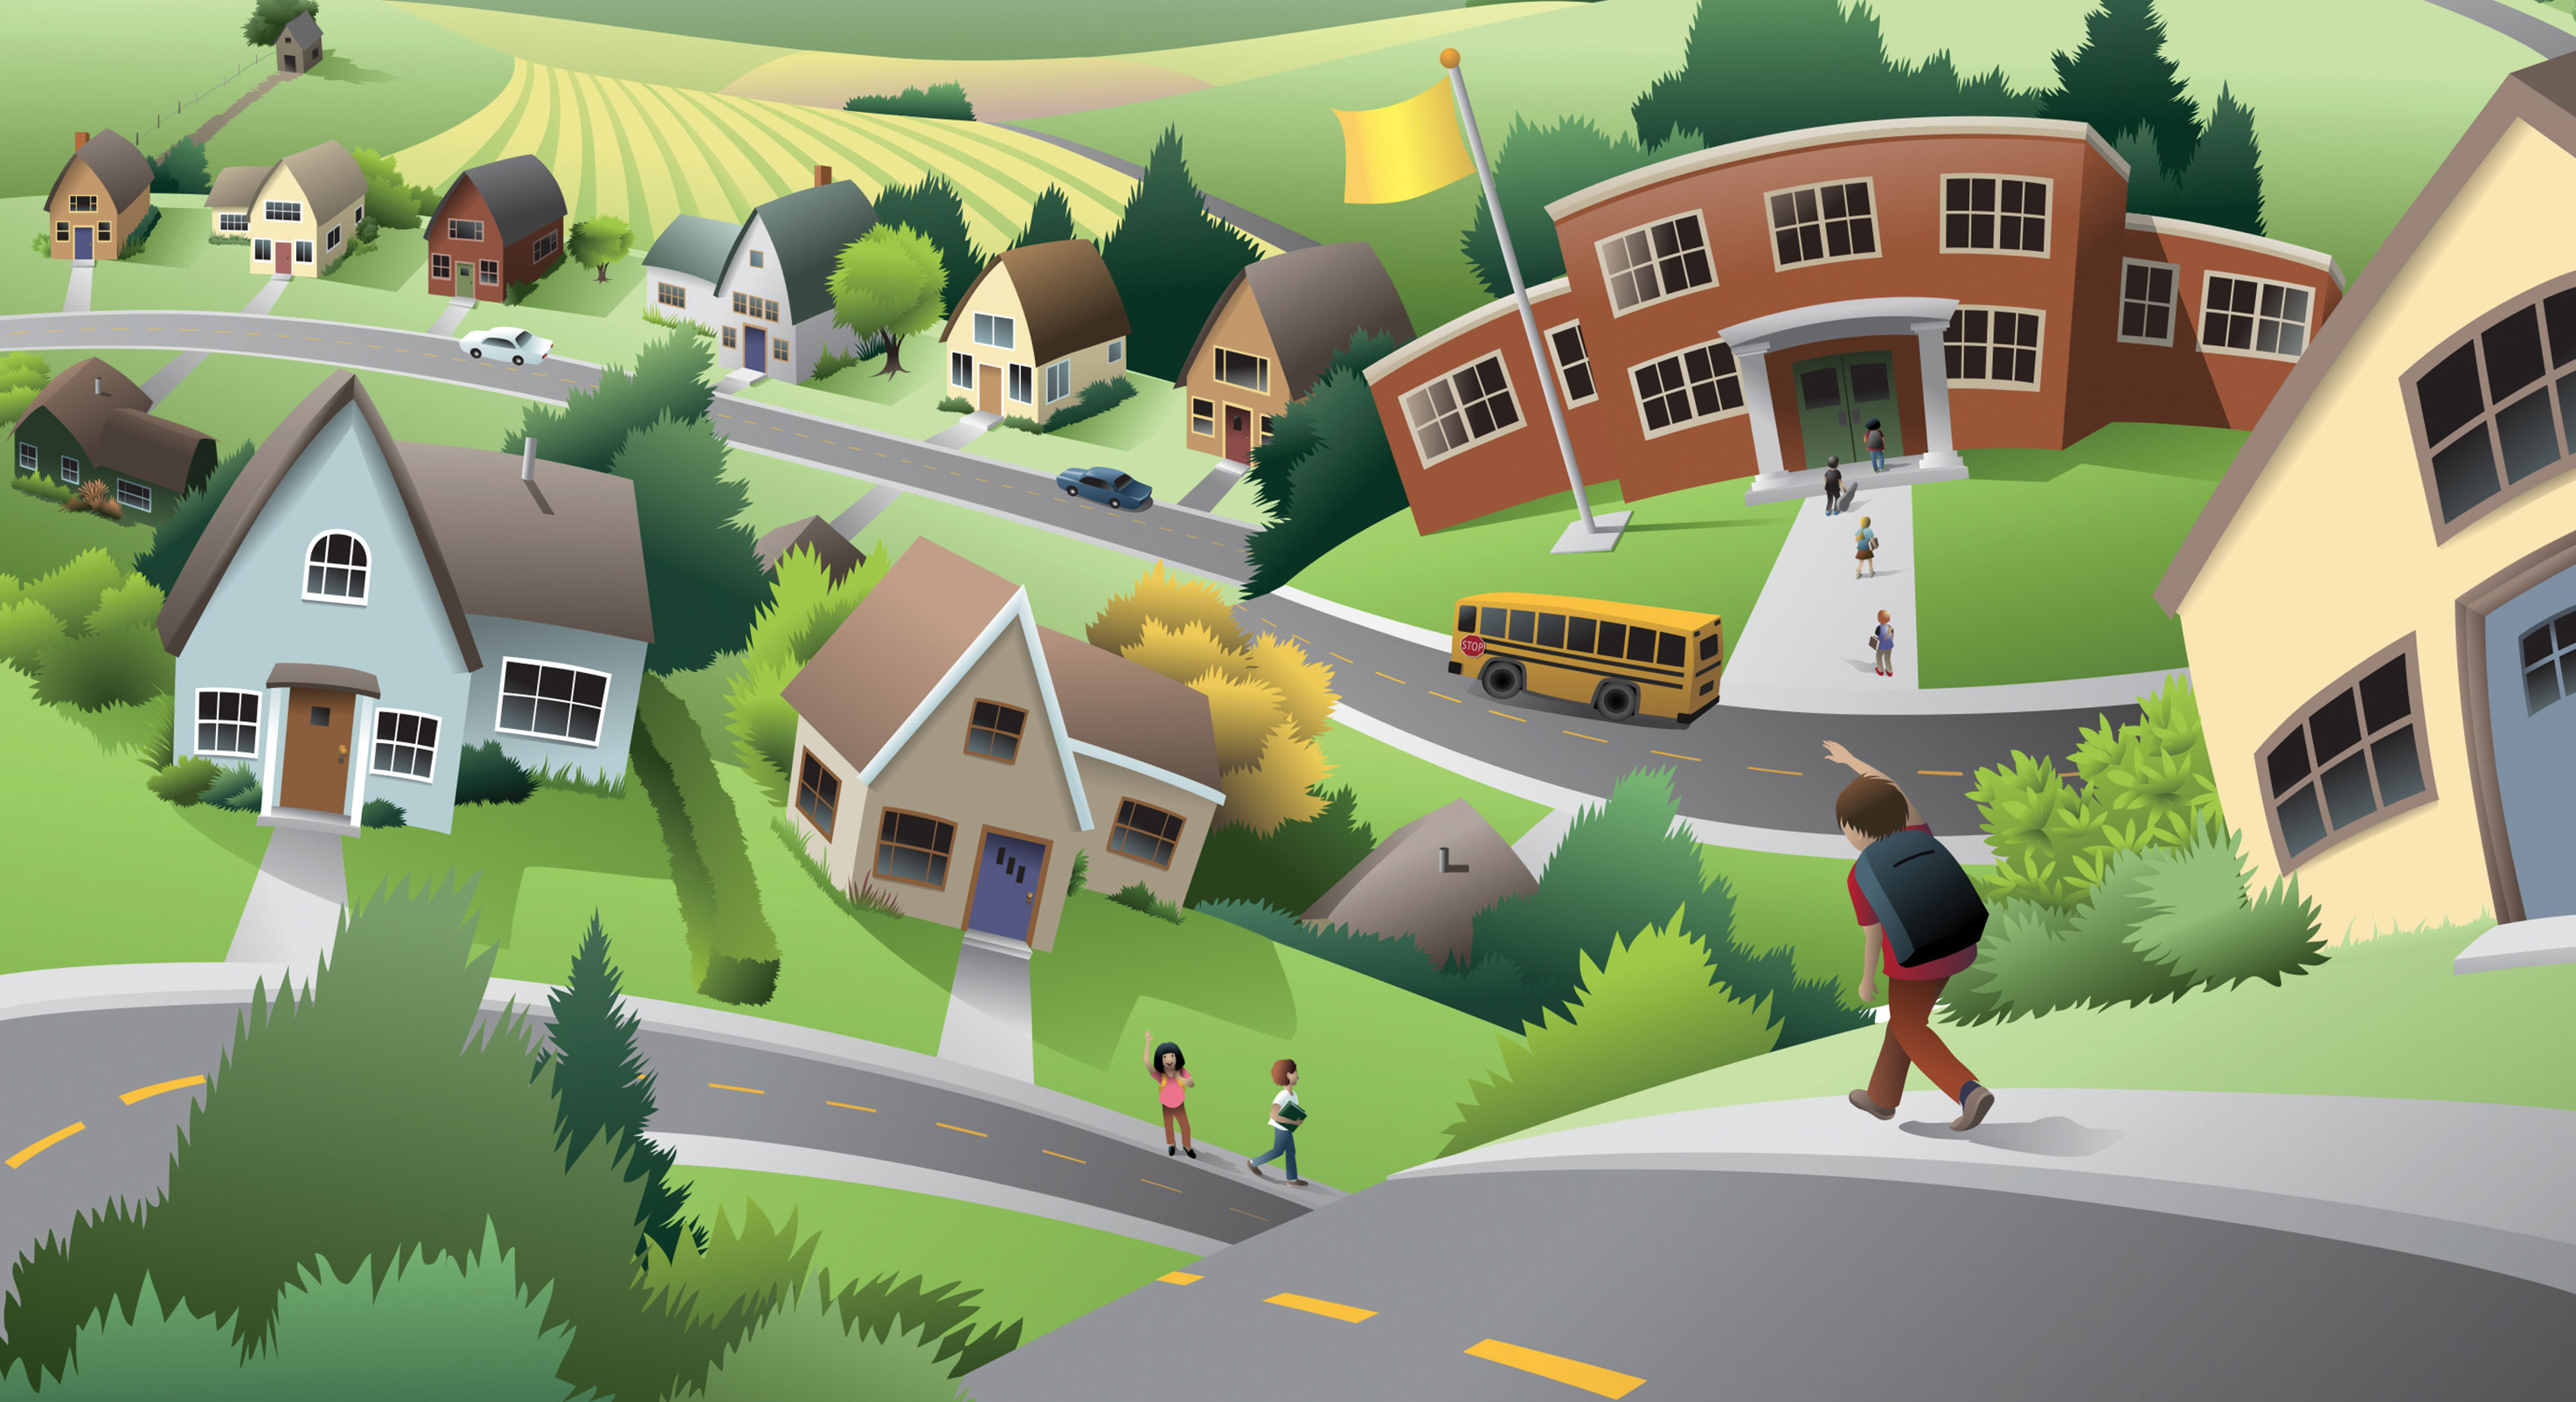 School-and-community-illustration-1